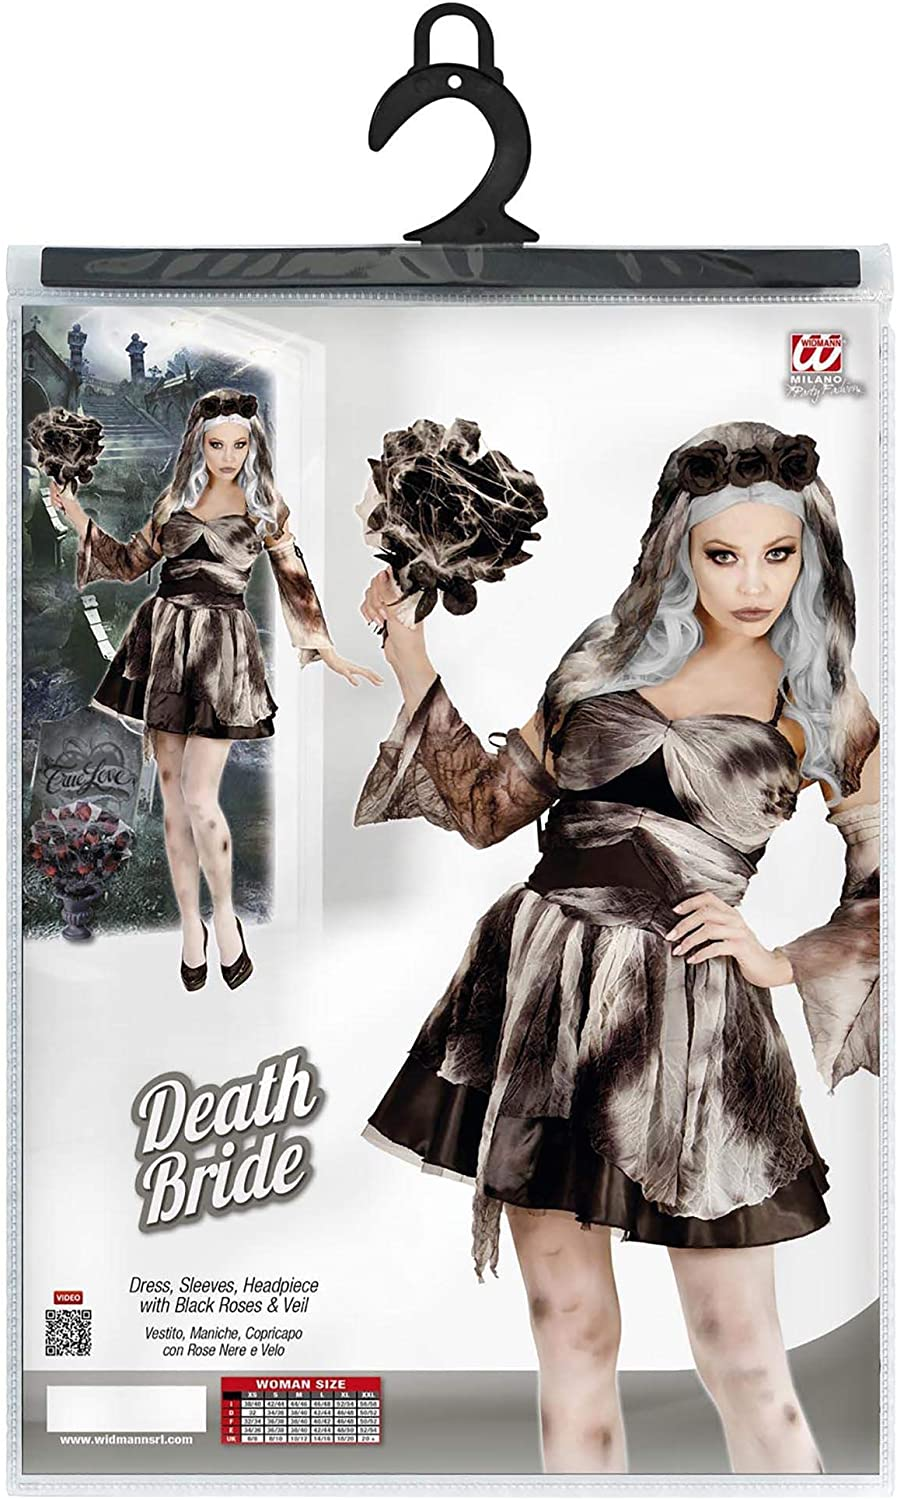 Multicolore, 05651 S Widmann-Death Bride Costume Donna